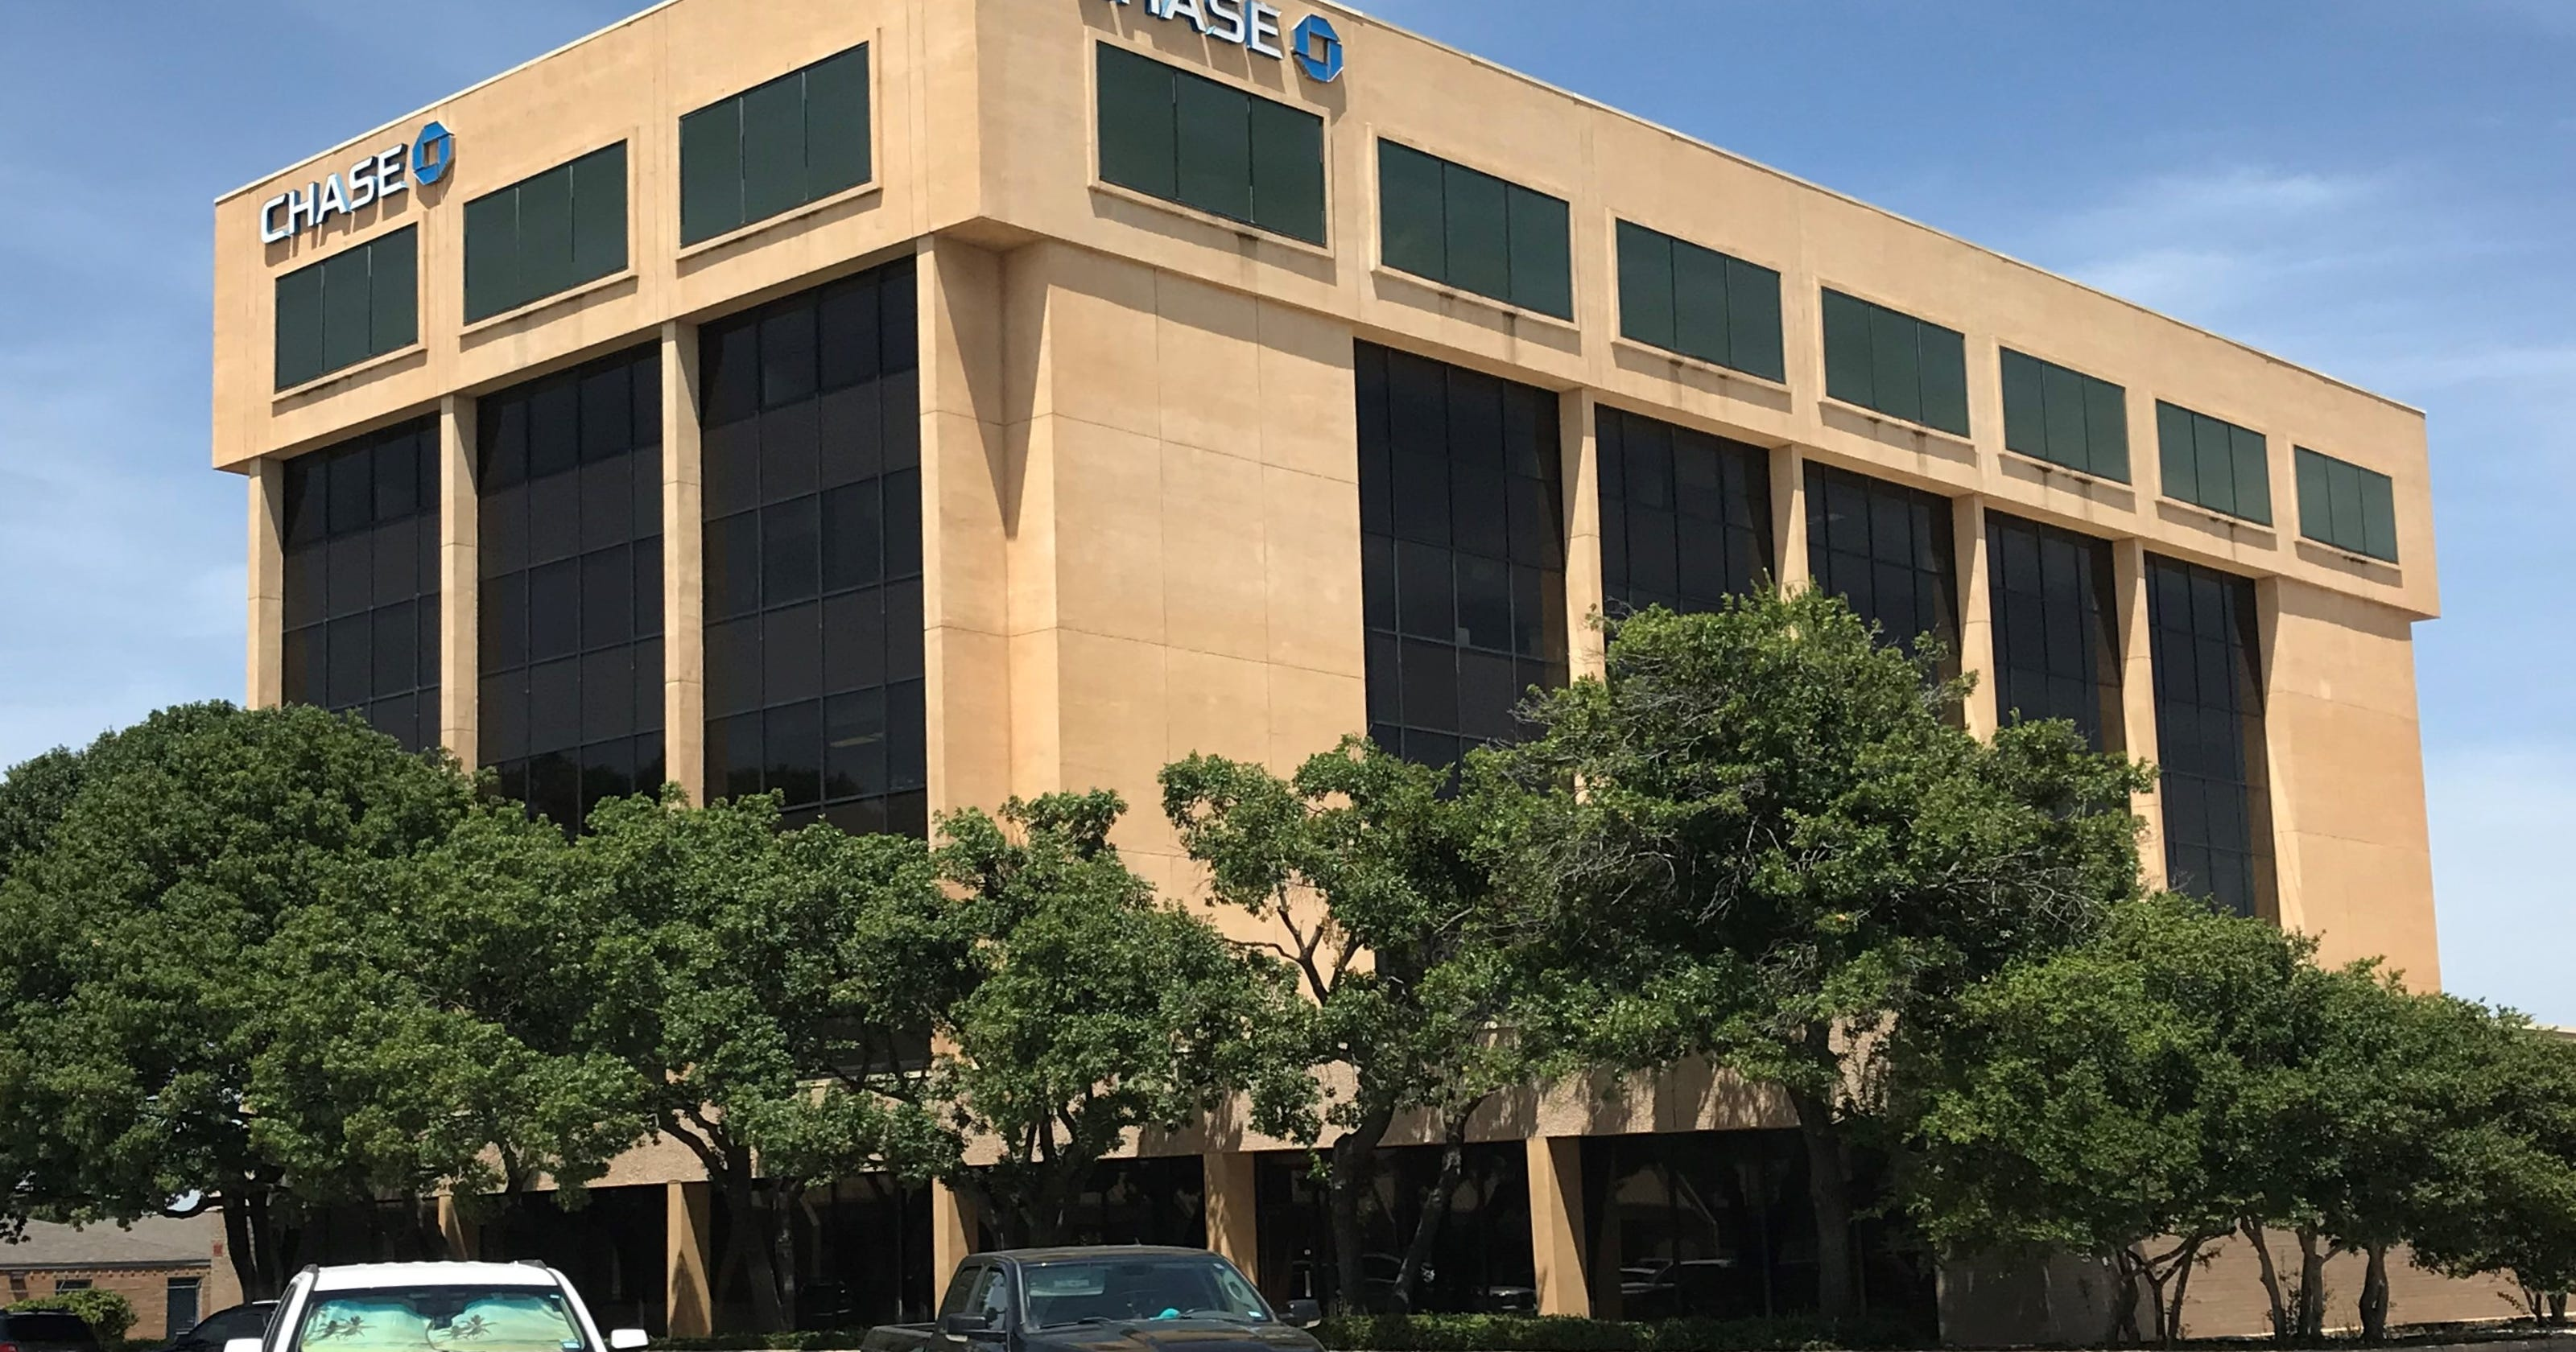 Chase Bank closing North First Street branch in Abilene